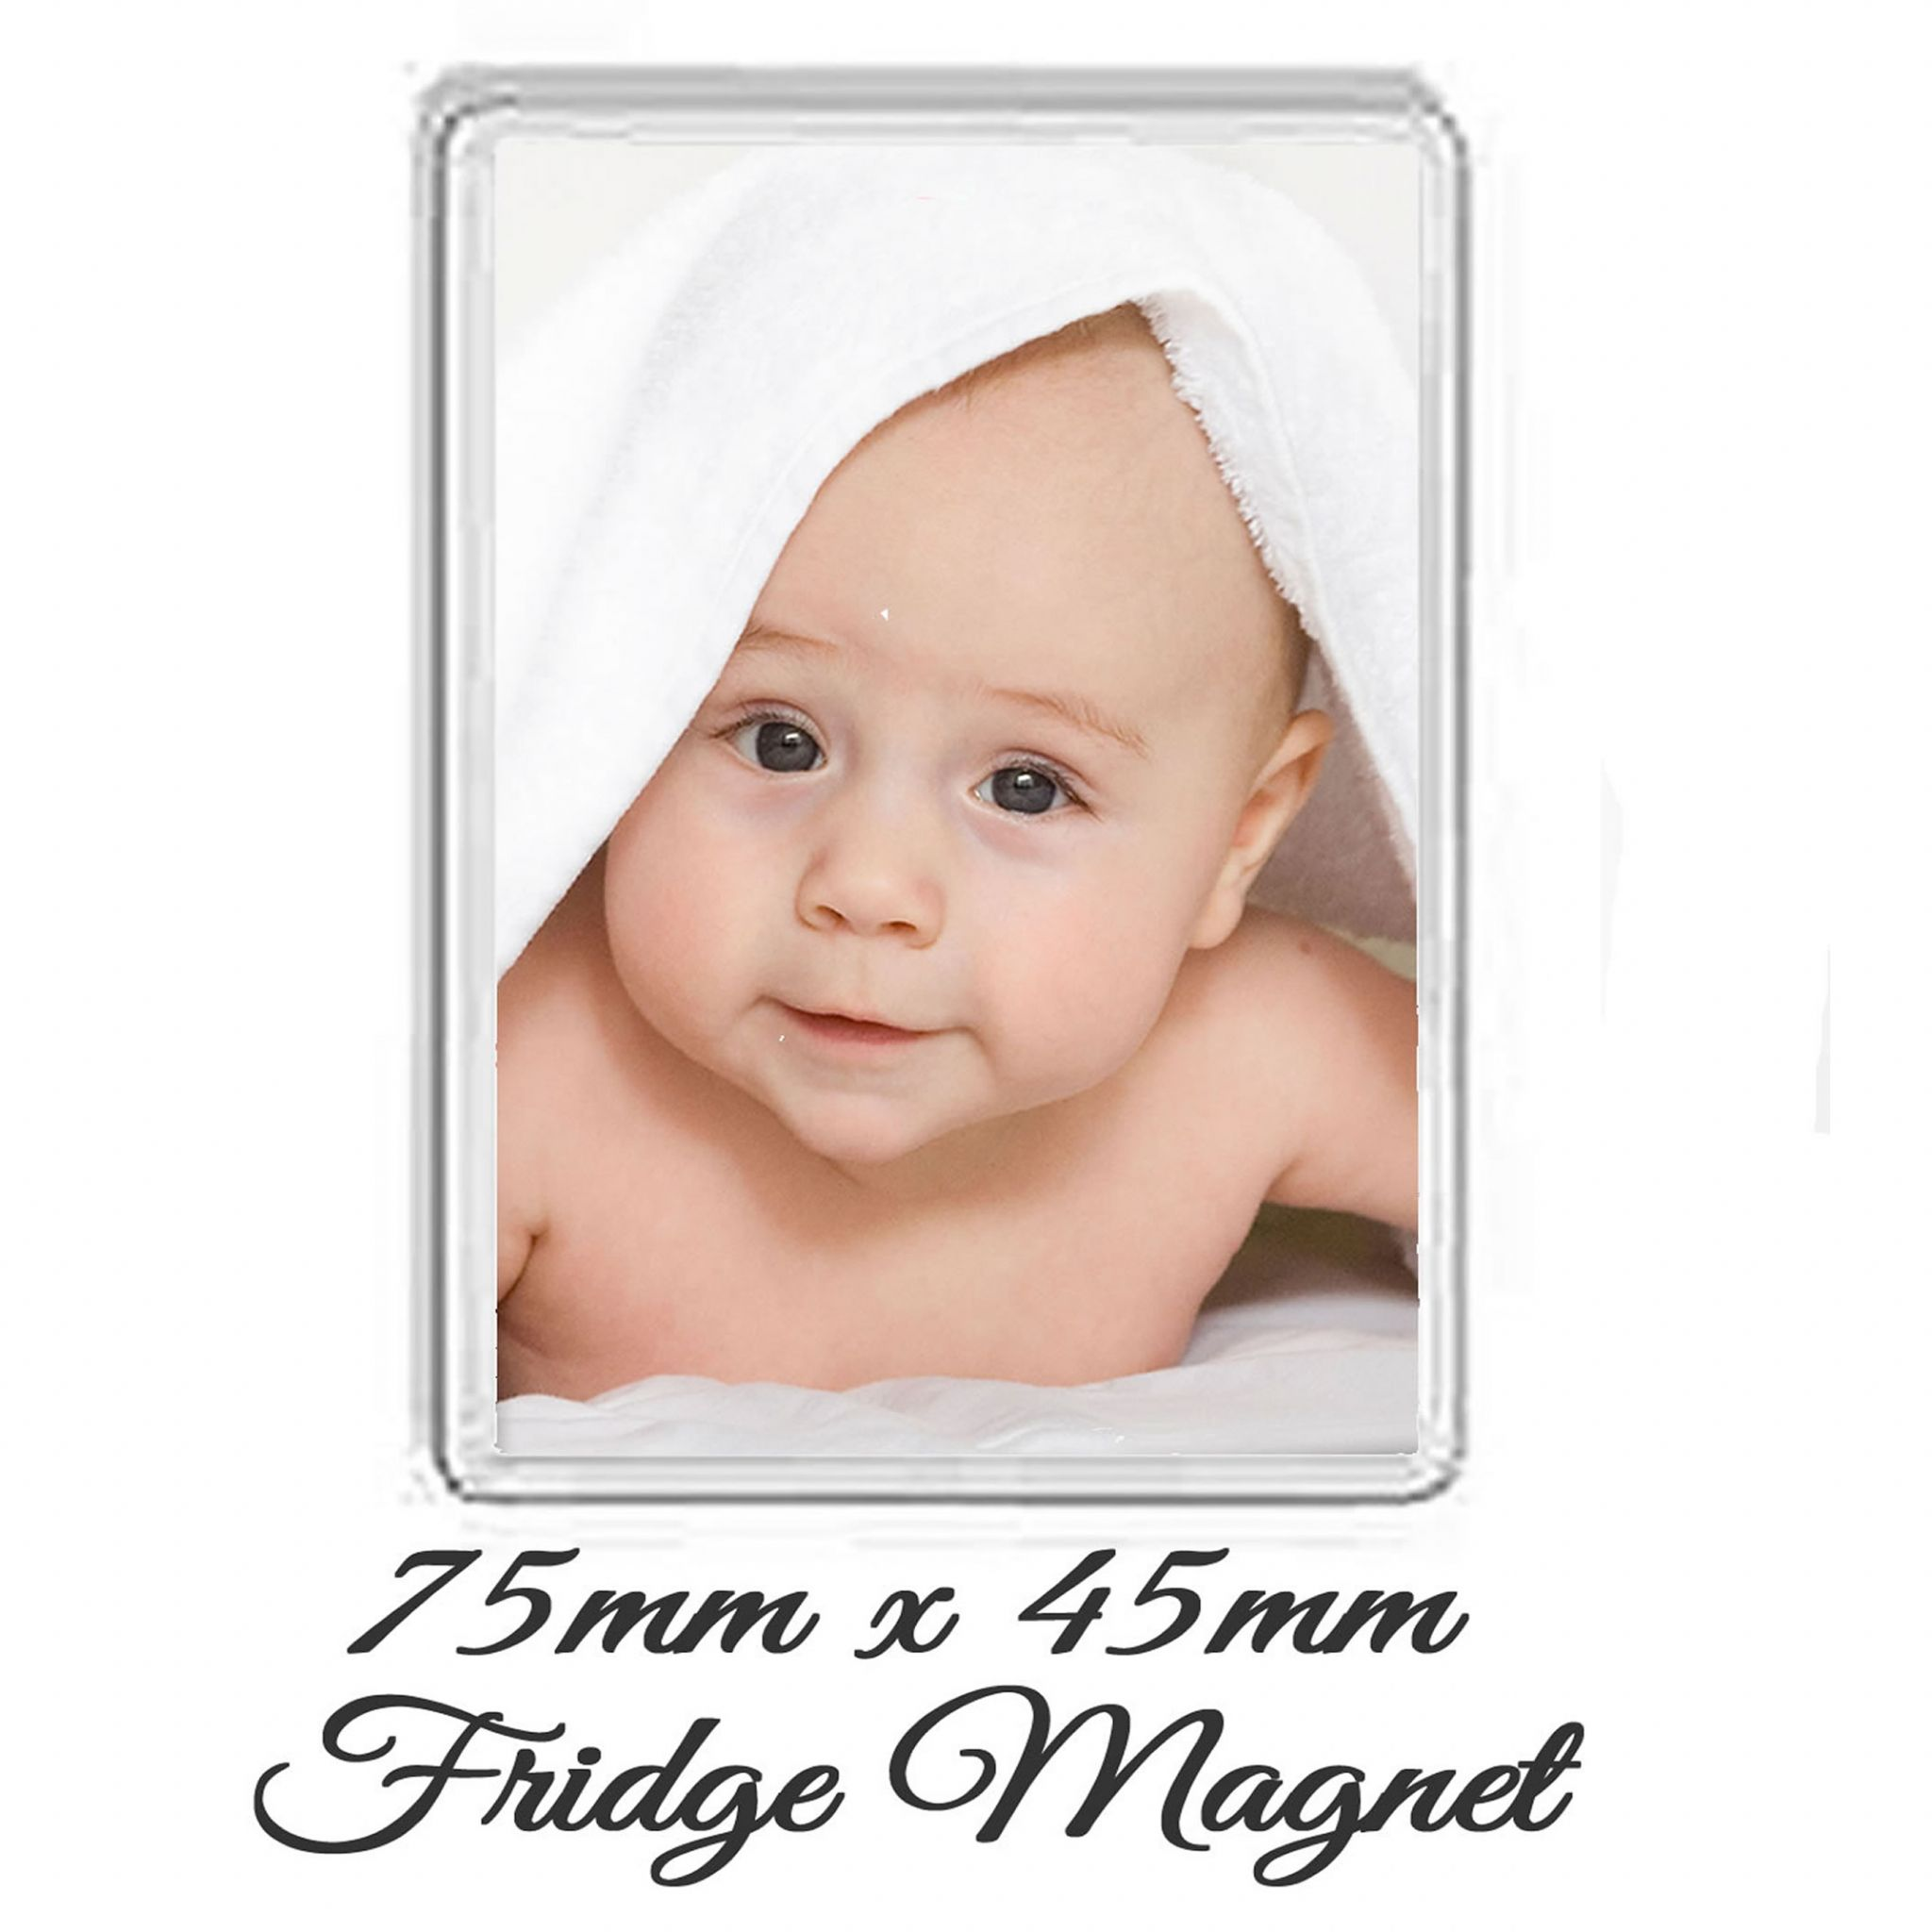 Little Gifts With Love - Personalised Photo Fridge Magnet 75mm x 45mm Add Any Photo or Image